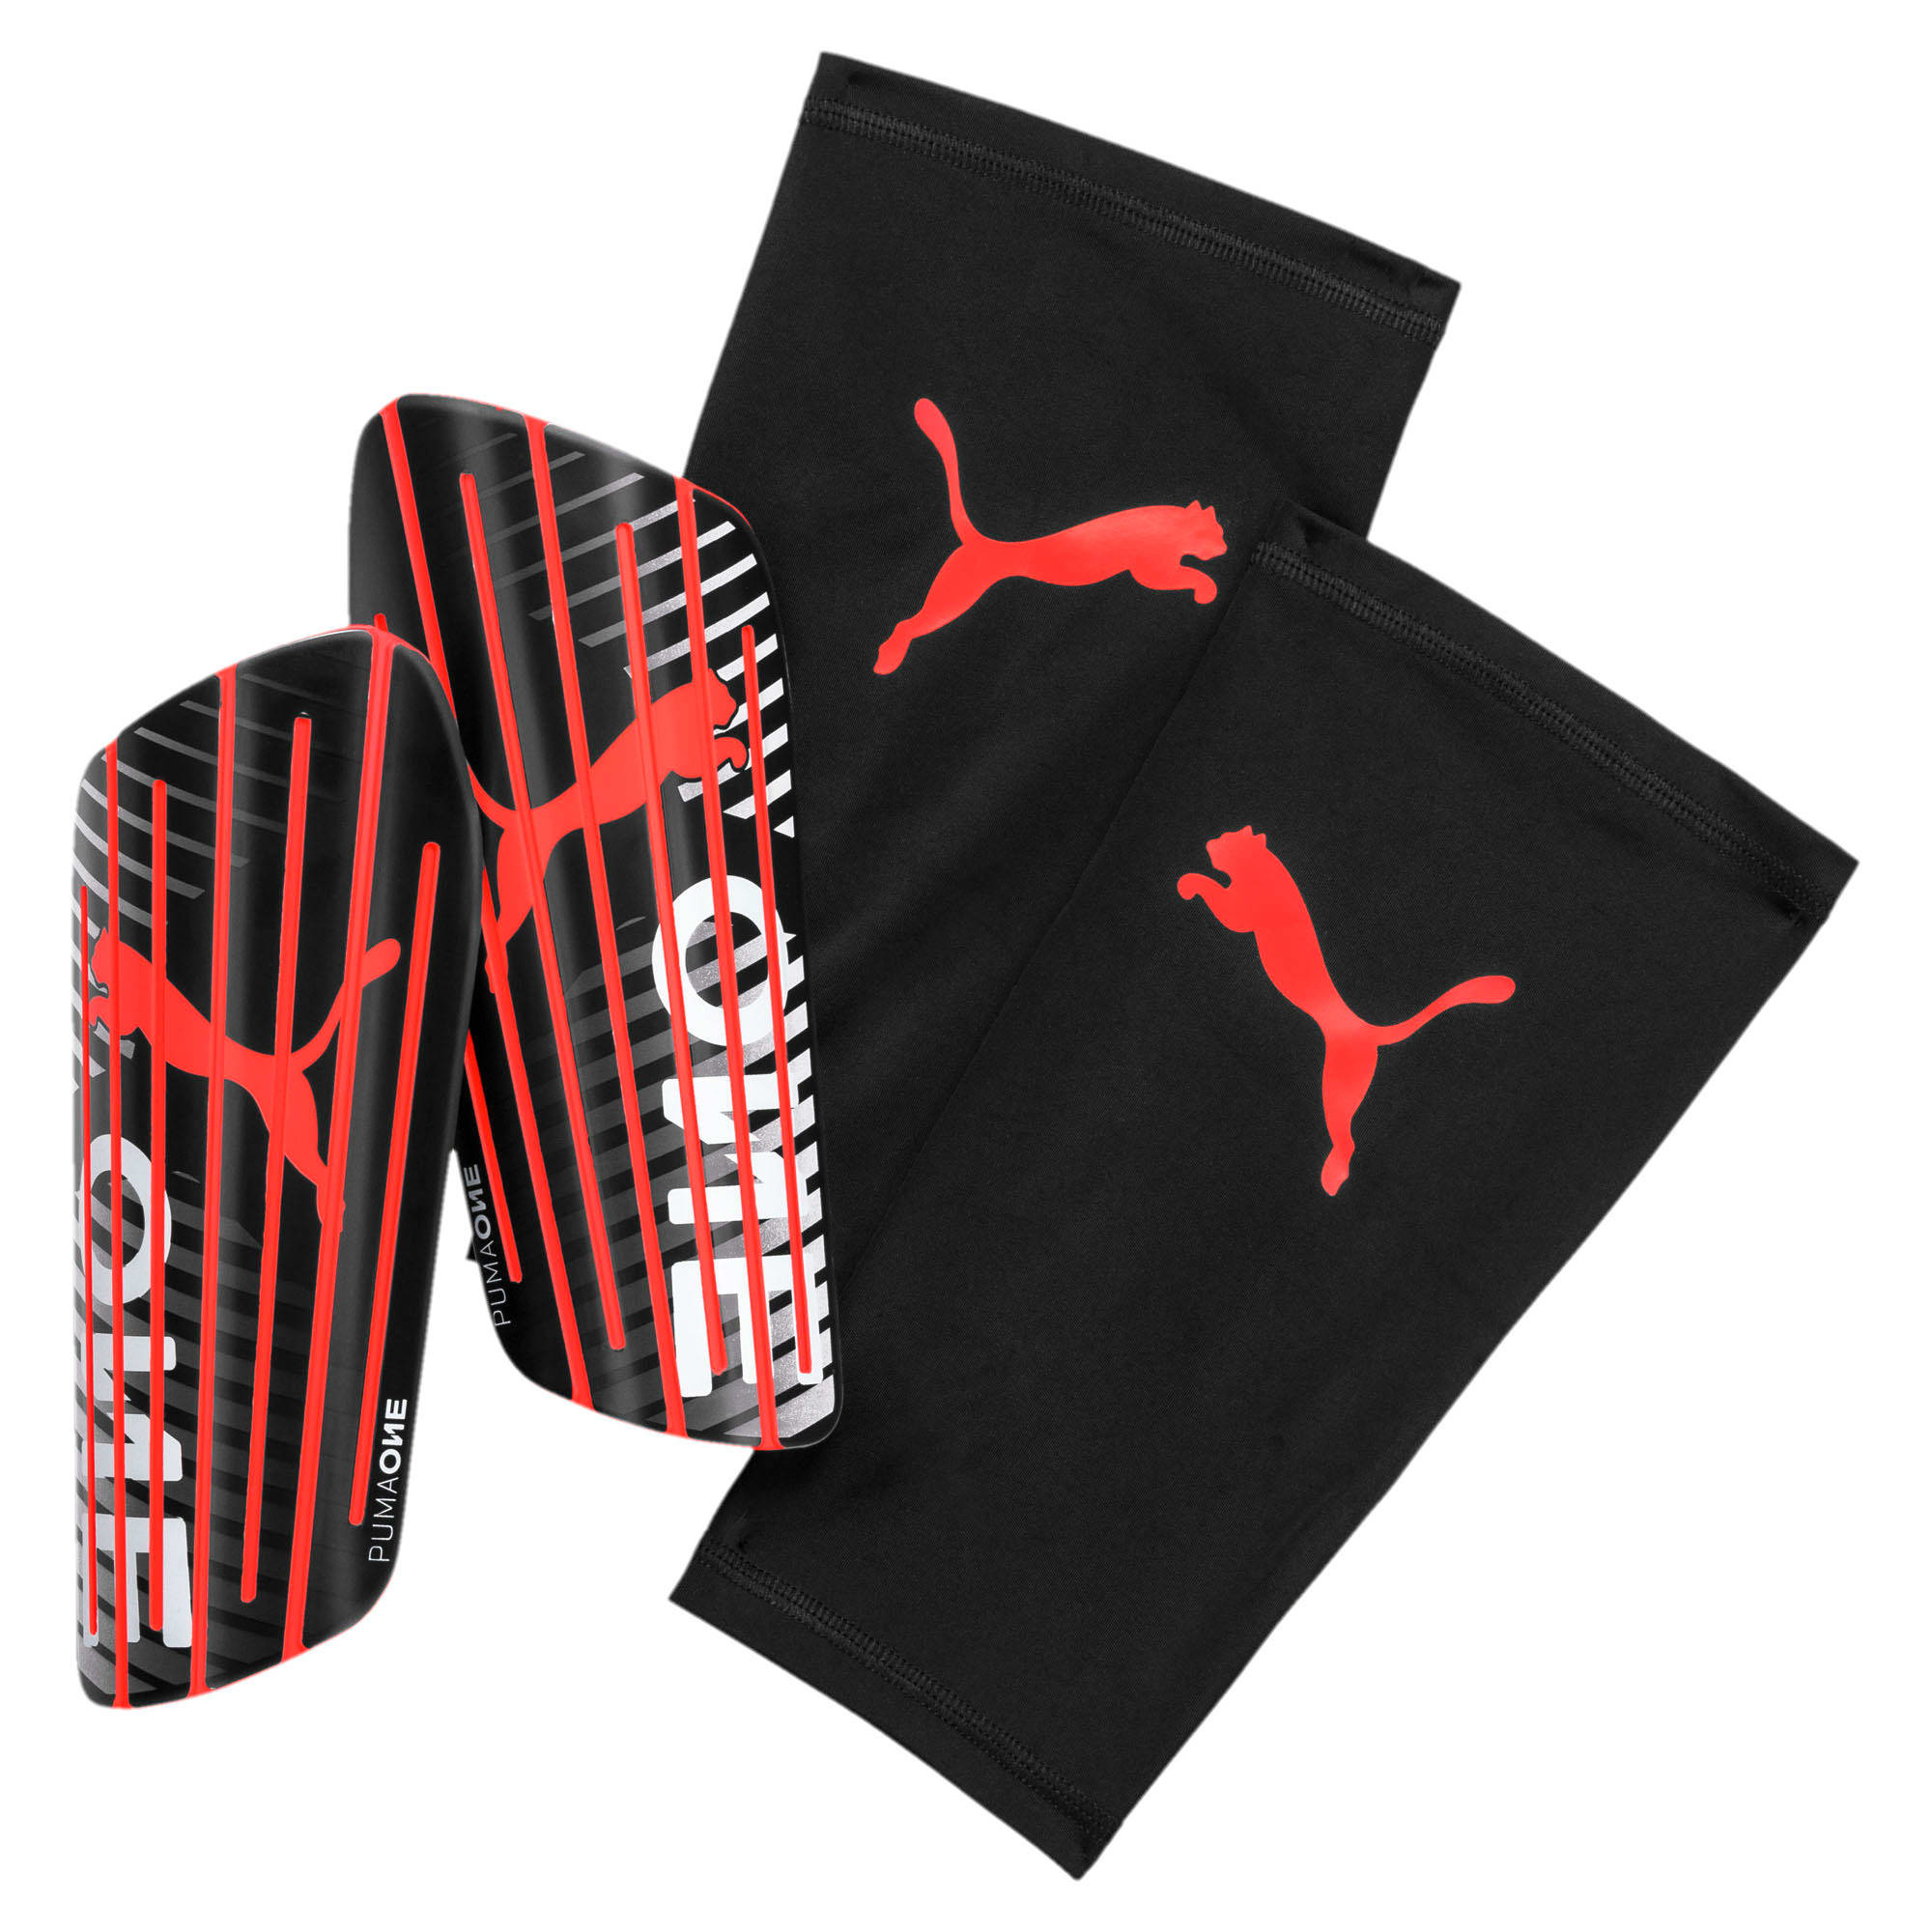 Thumbnail 1 of PUMA ONE 1 Shin Guards, Black-Nrgy Red-White, medium